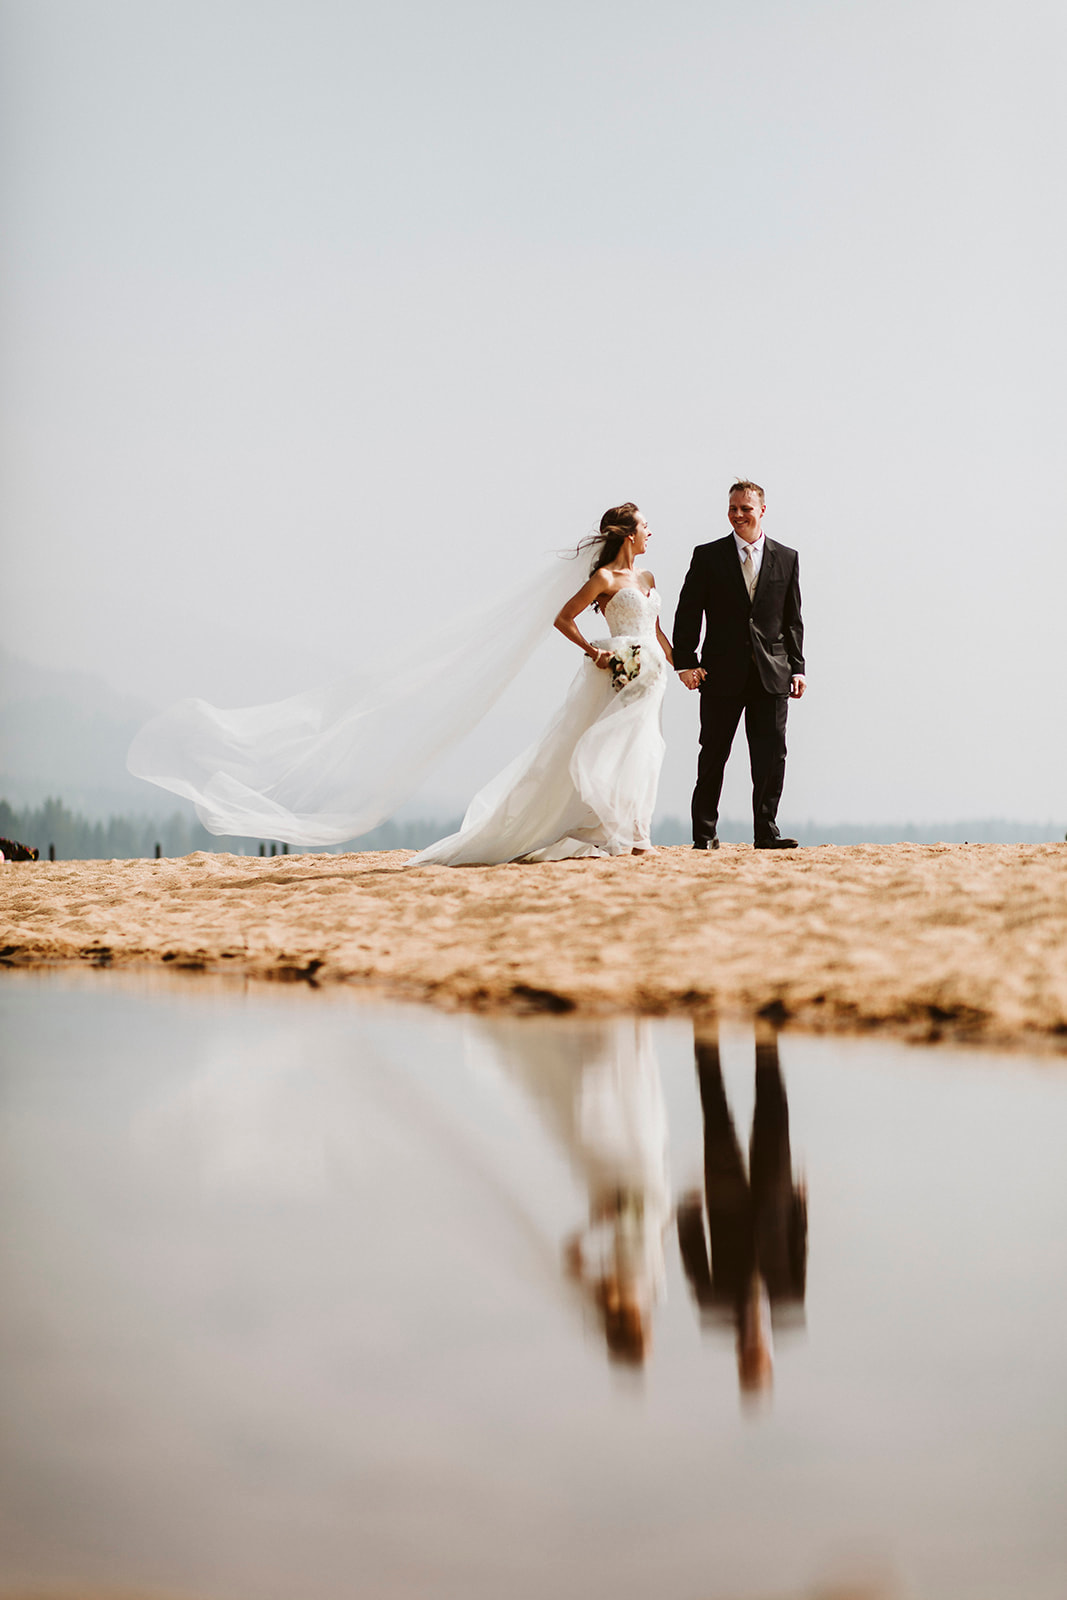 _P8A7468vild-vild photography-photography-wedding-wedding photography-tahoe-lake tahoe-lake tahoe wedding photographer-nevada wedding photographer-mountain wedding.jpg